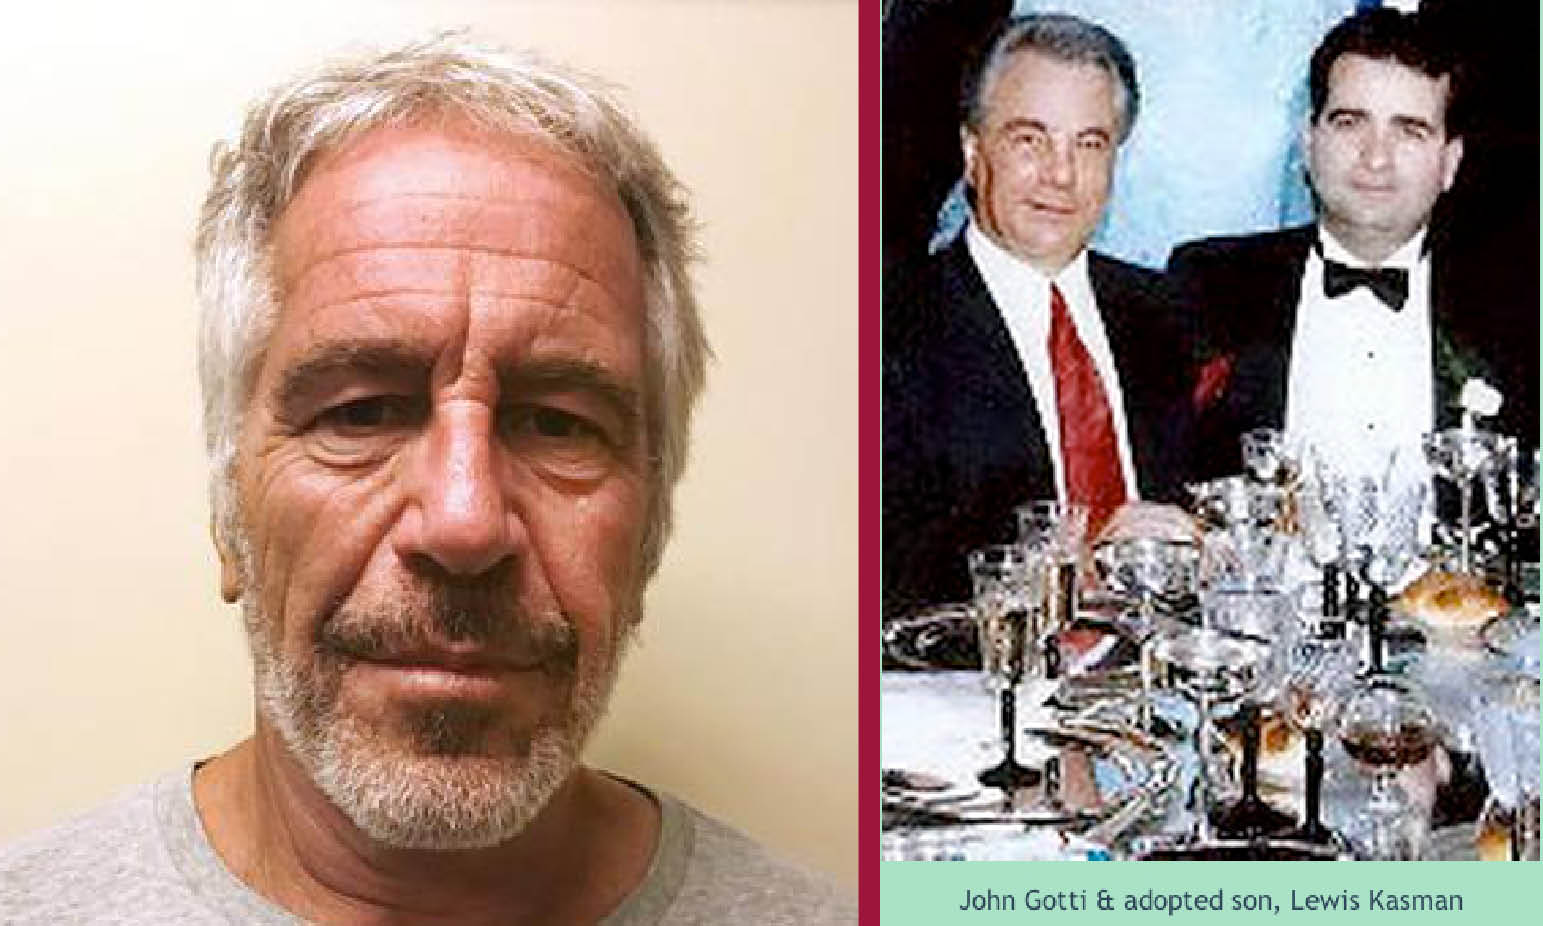 EPSTEIN DEATH, THE GAMBINO'S ZIONIST MOBSTER REVELATIONS